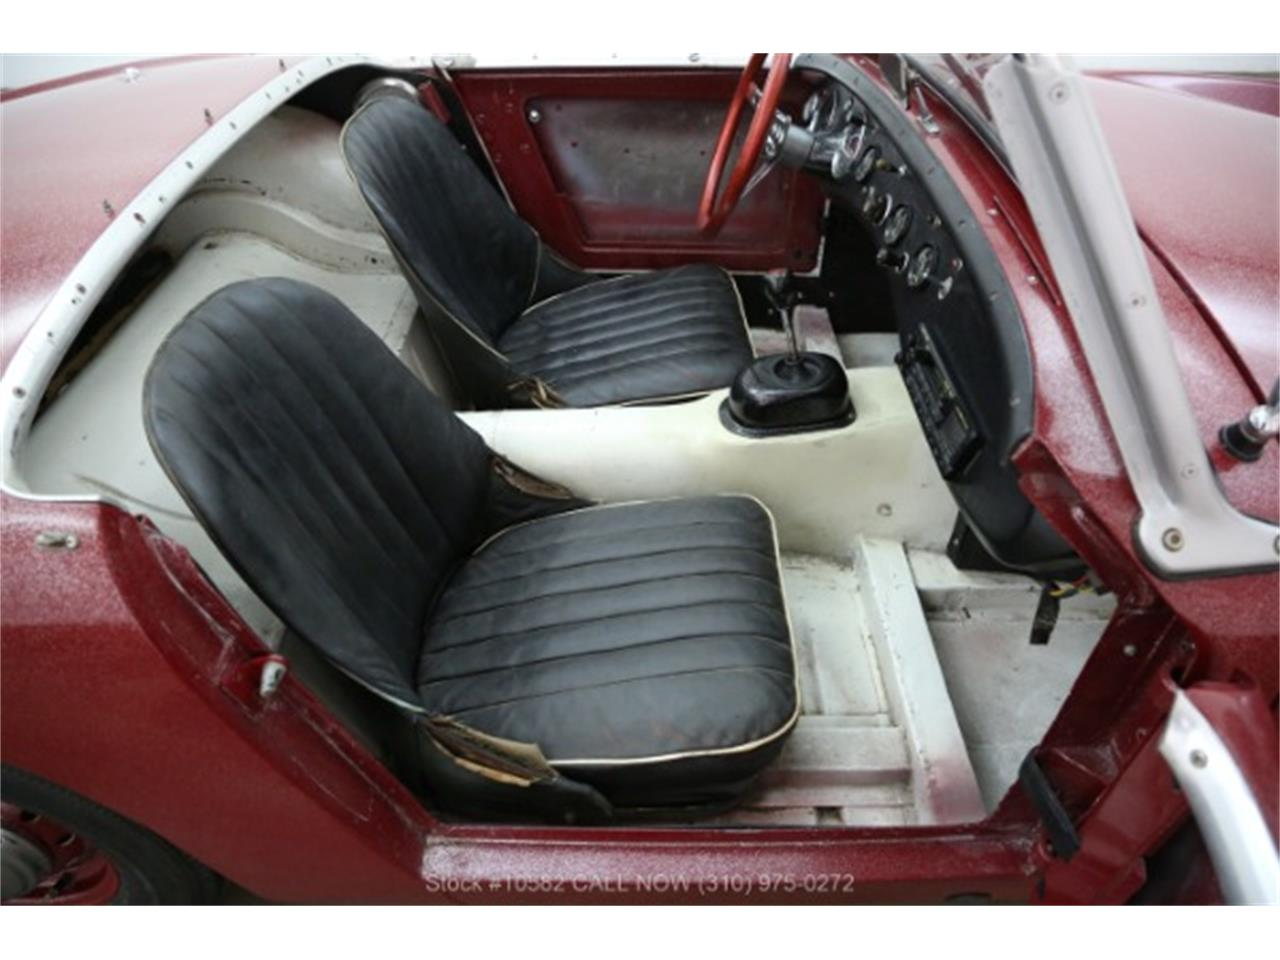 Large Picture of Classic '60 Bugeye Sprite - PKL4